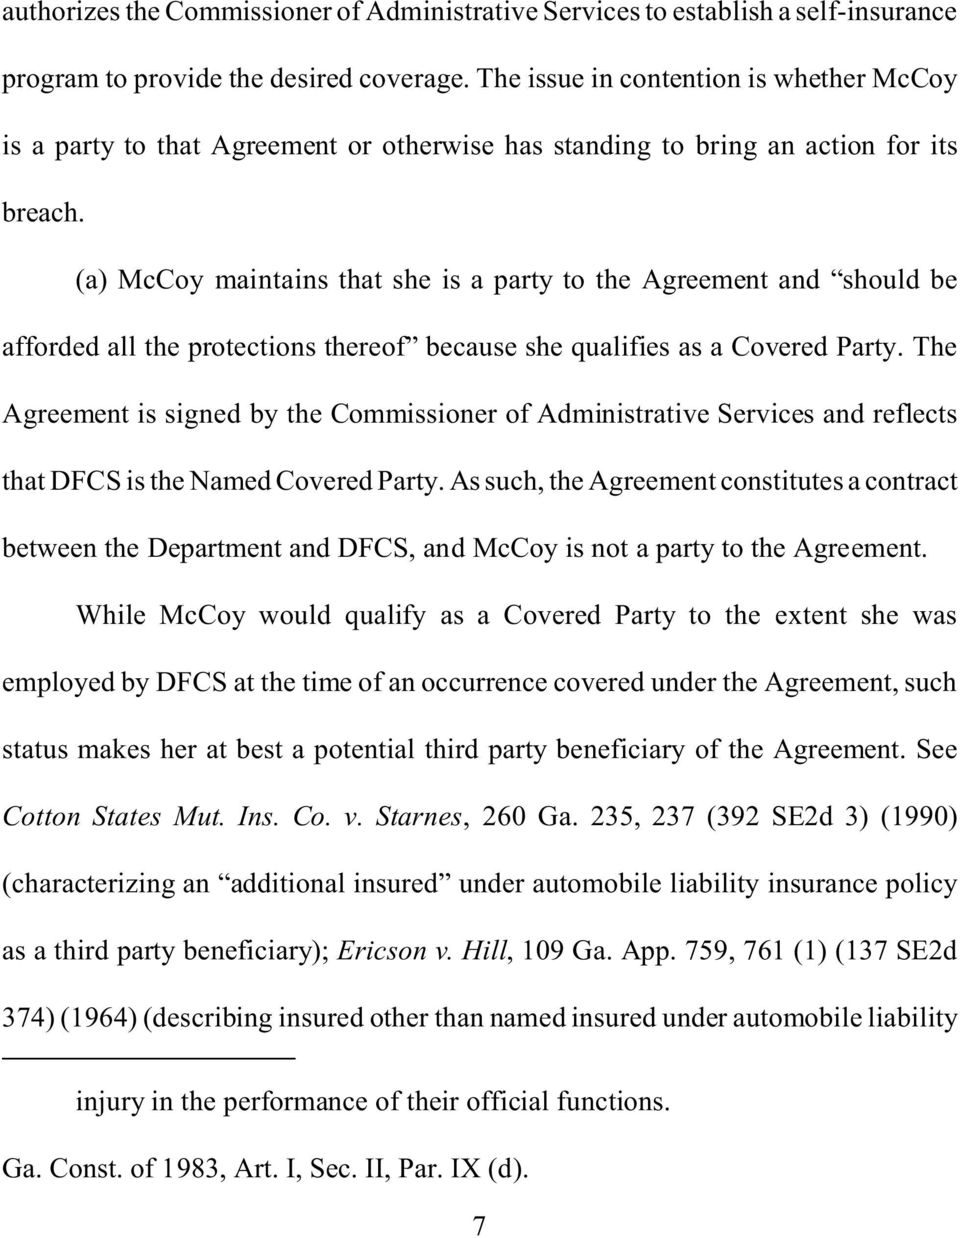 (a) McCoy maintains that she is a party to the Agreement and should be afforded all the protections thereof because she qualifies as a Covered Party.